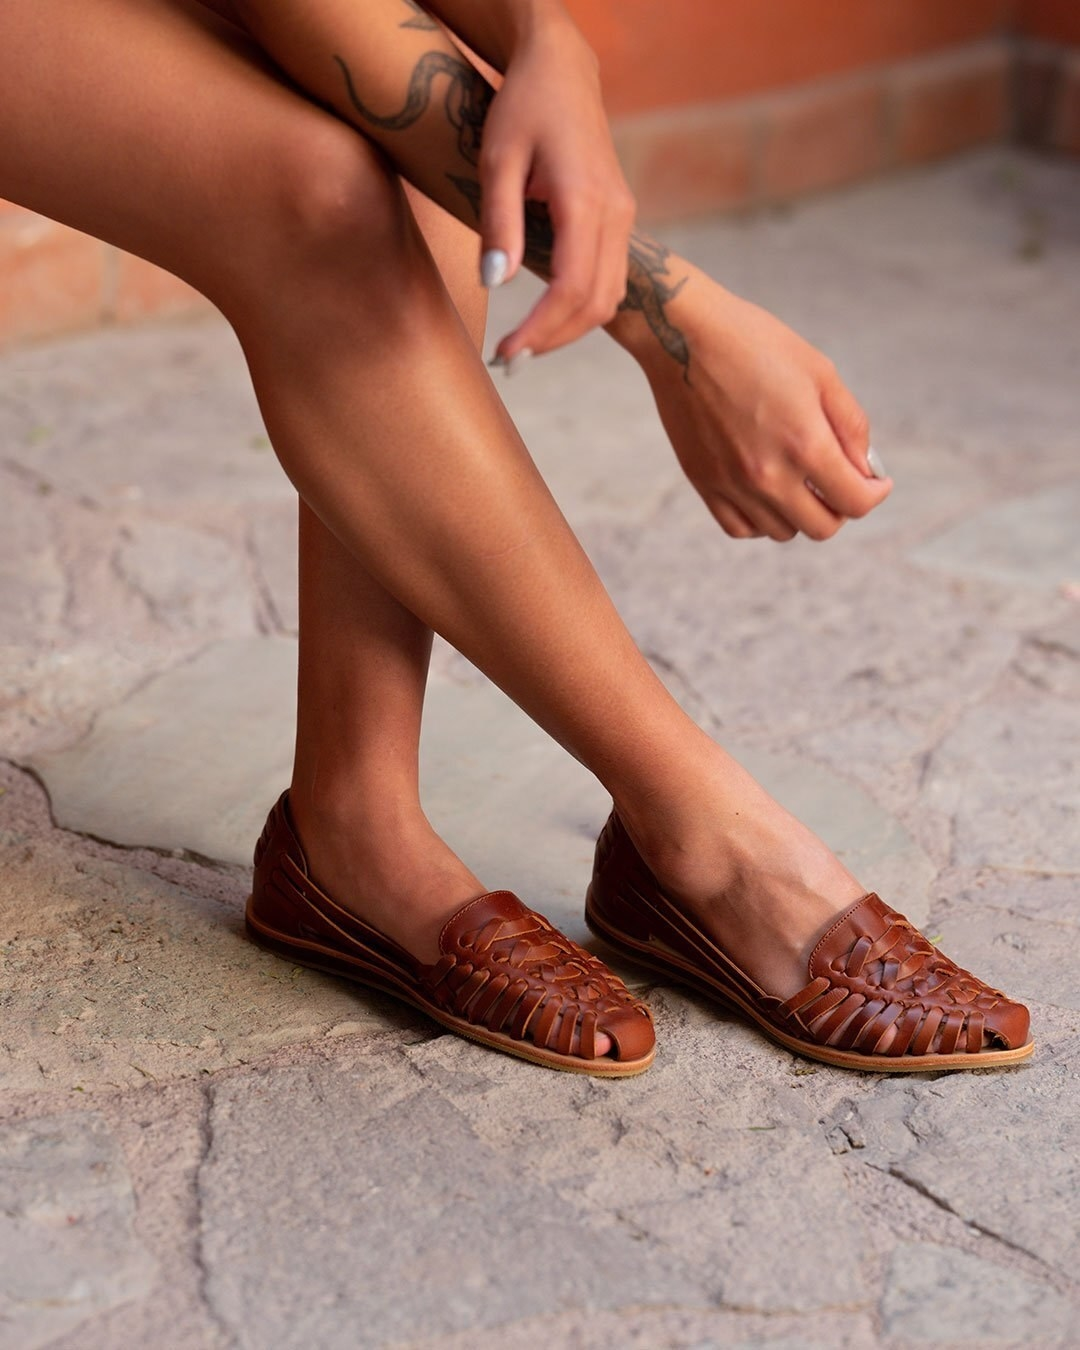 A model wearing the shoes without socks